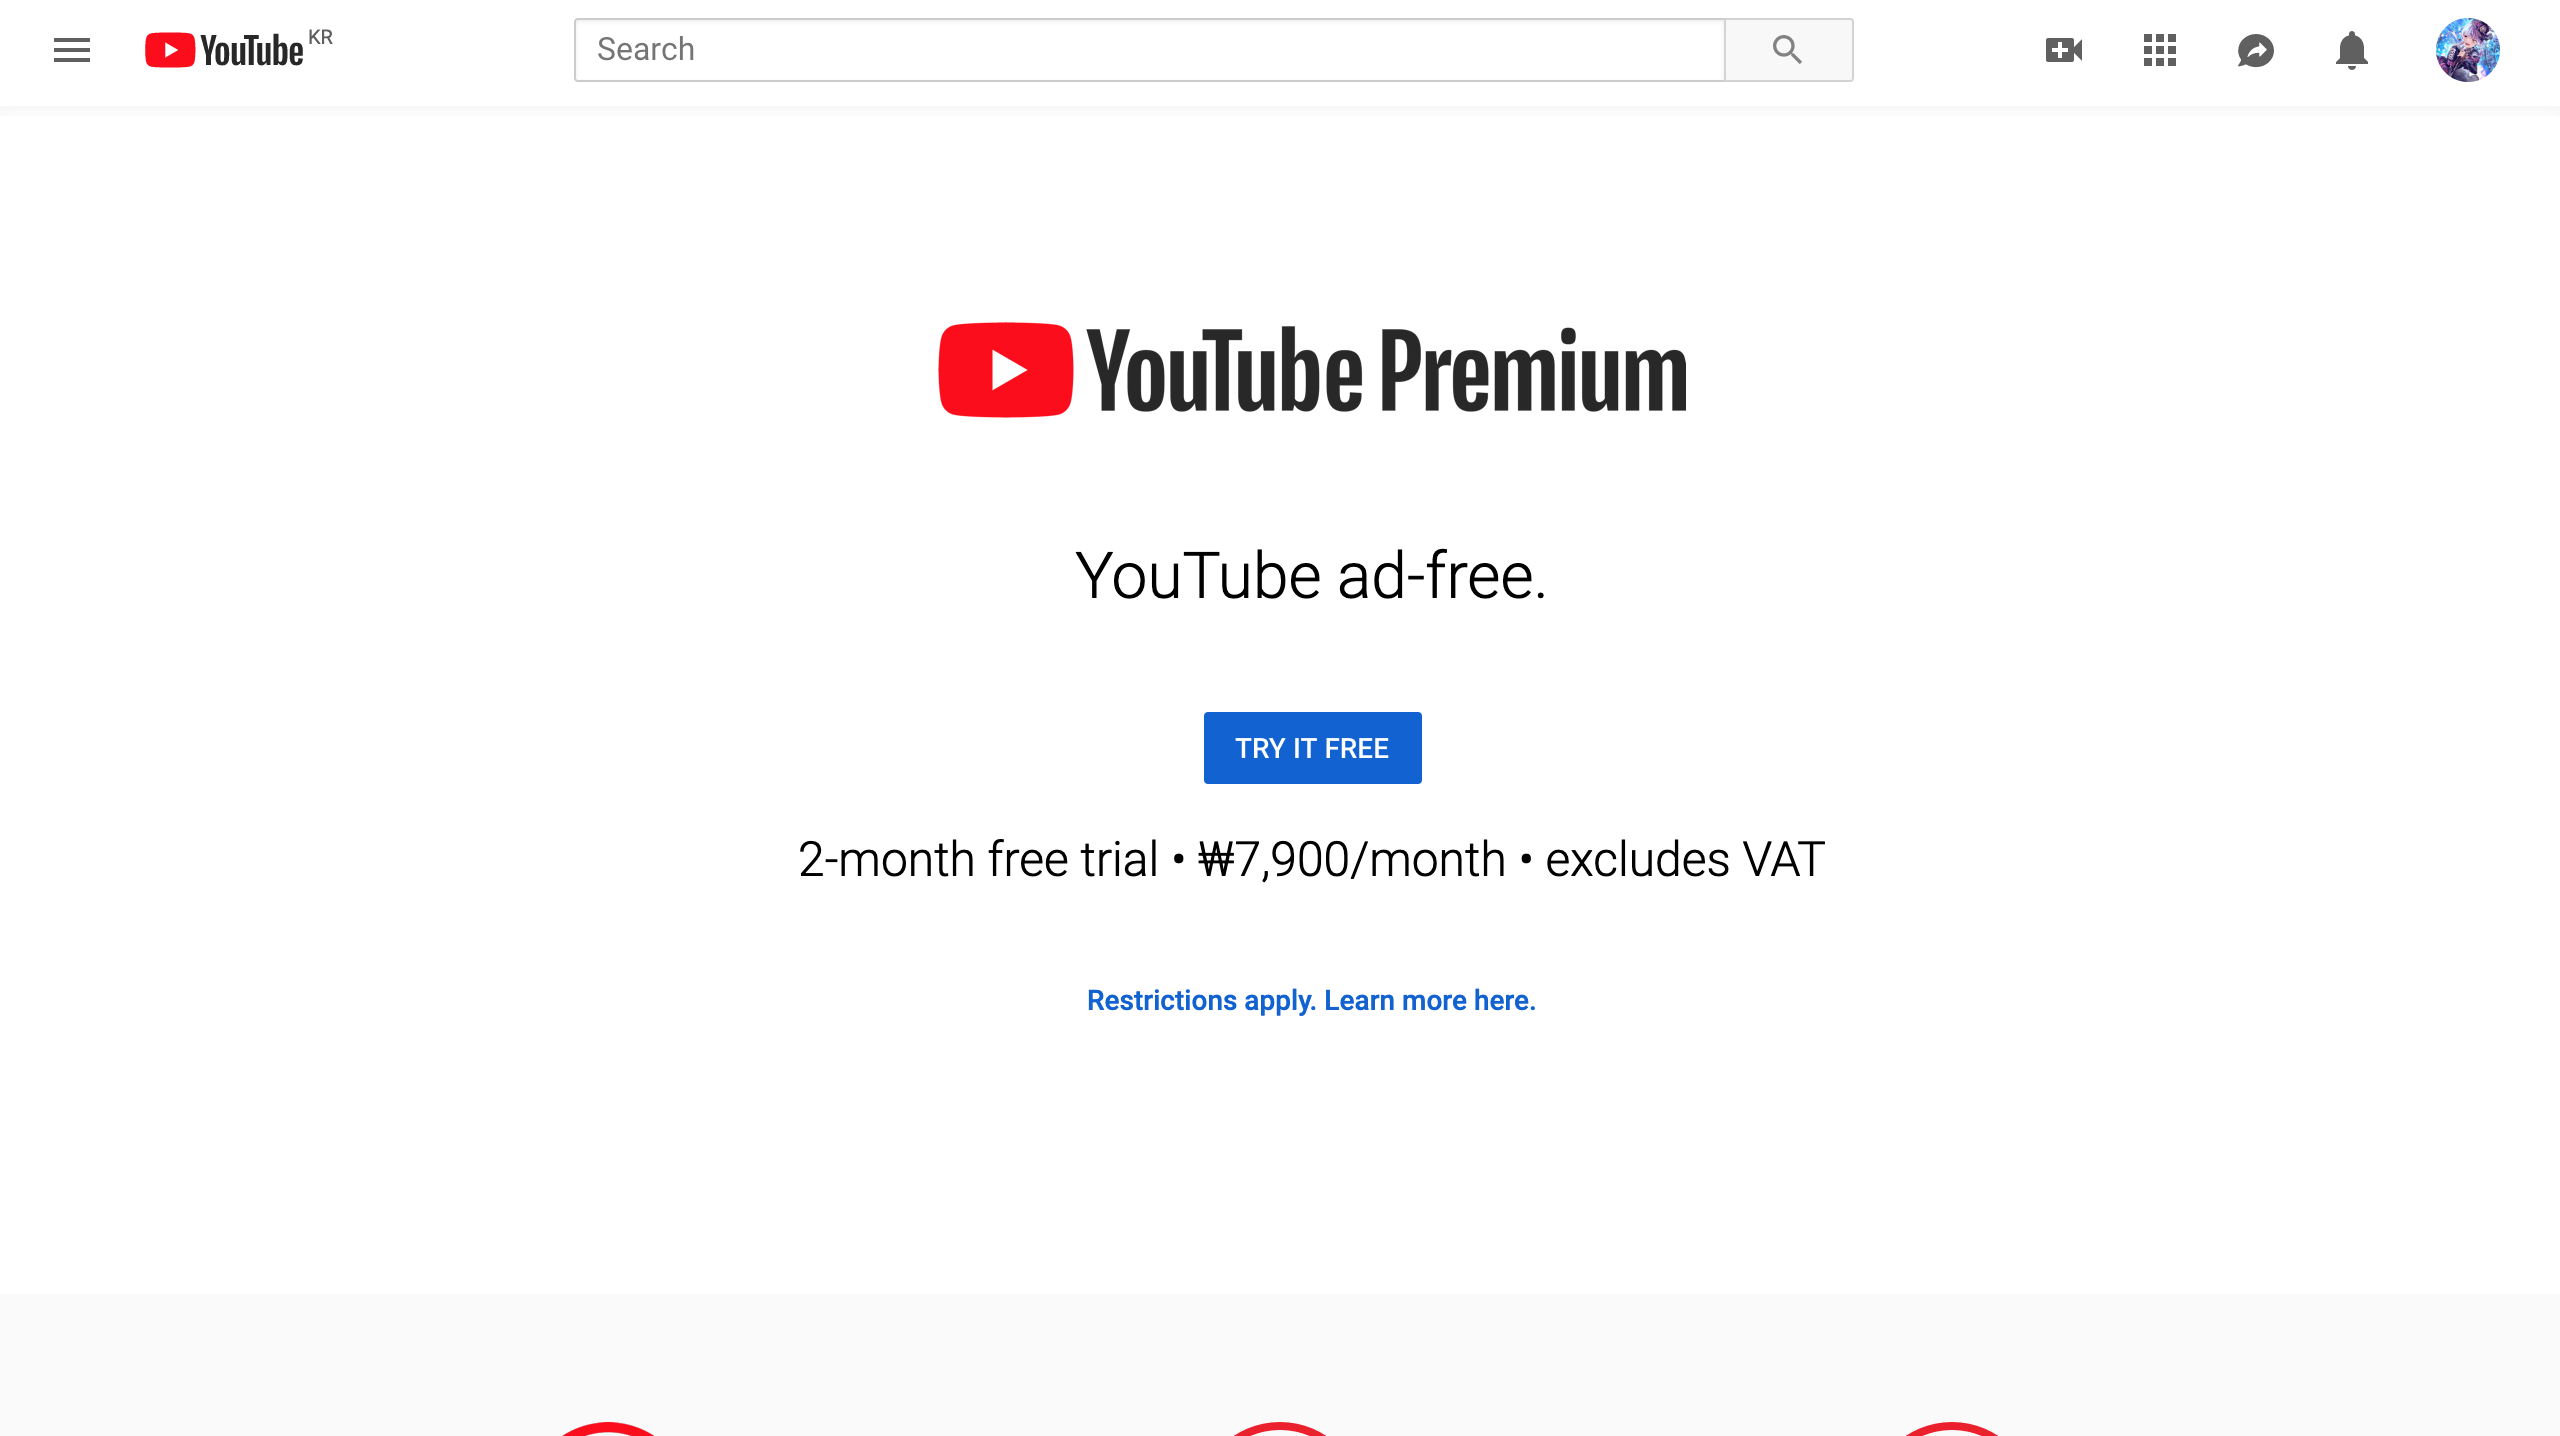 Why Is Youtube Music Blocked It Redirects When I Type In Music Youtube Com To Youtube Premium Youtube Community